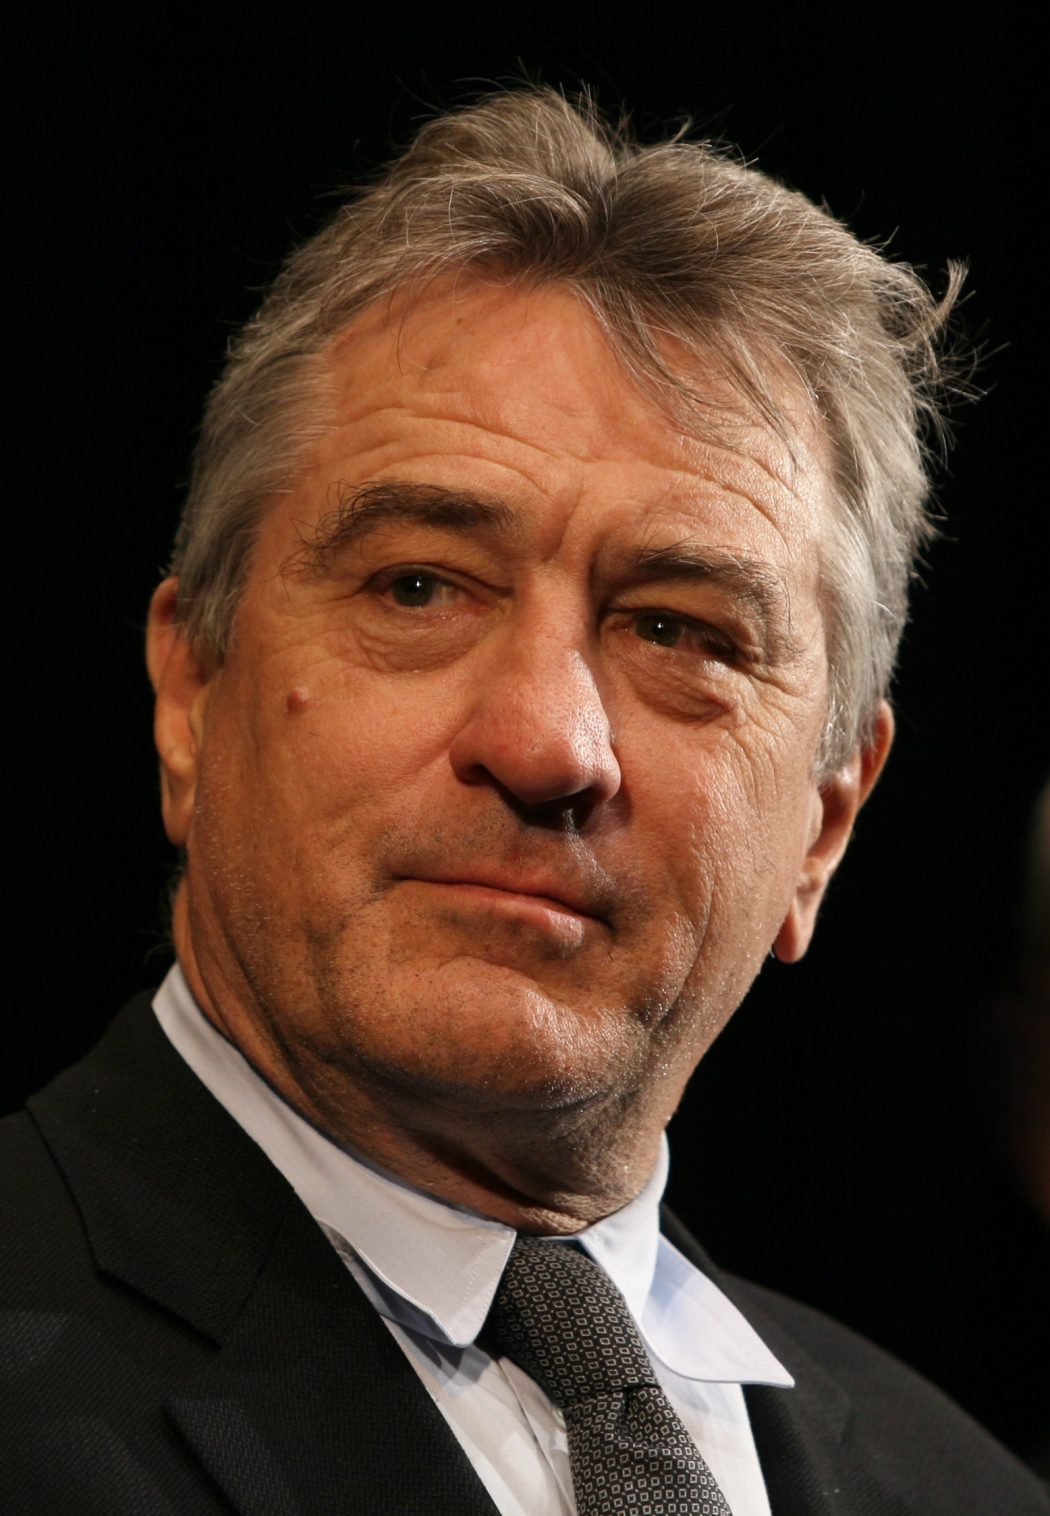 Robert_De_Niro_KVIFF_portrait 15 Courage Celebrities Who Battled Cancer And Won